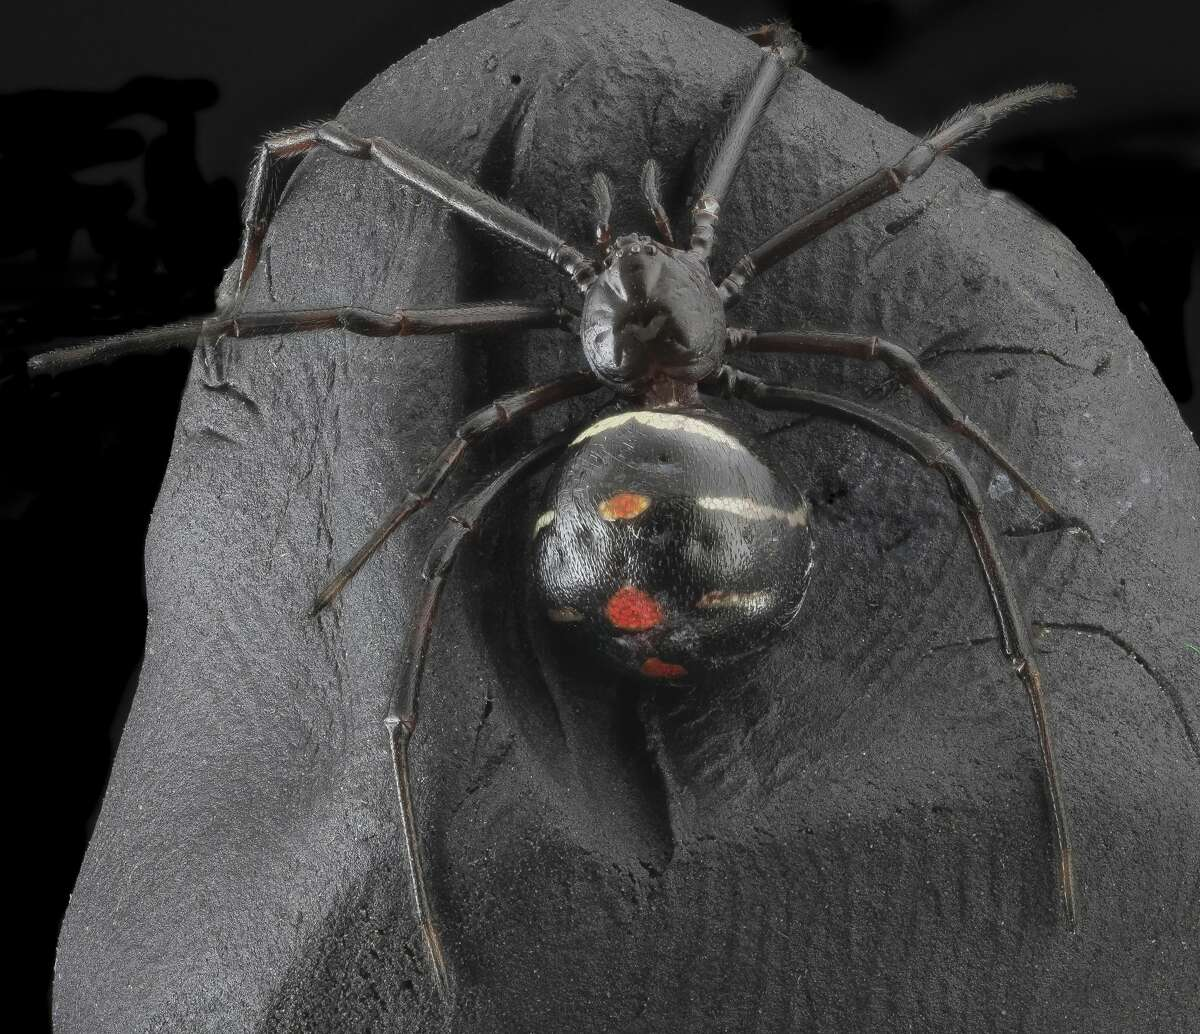 Black Widow Symptoms of bite: Nausea, chills, increased blood pressure, headache, sweating, weakness and fever.Lethal bite: In rare cases, yes.Medical attention necessary: Yes.Source:Healthline